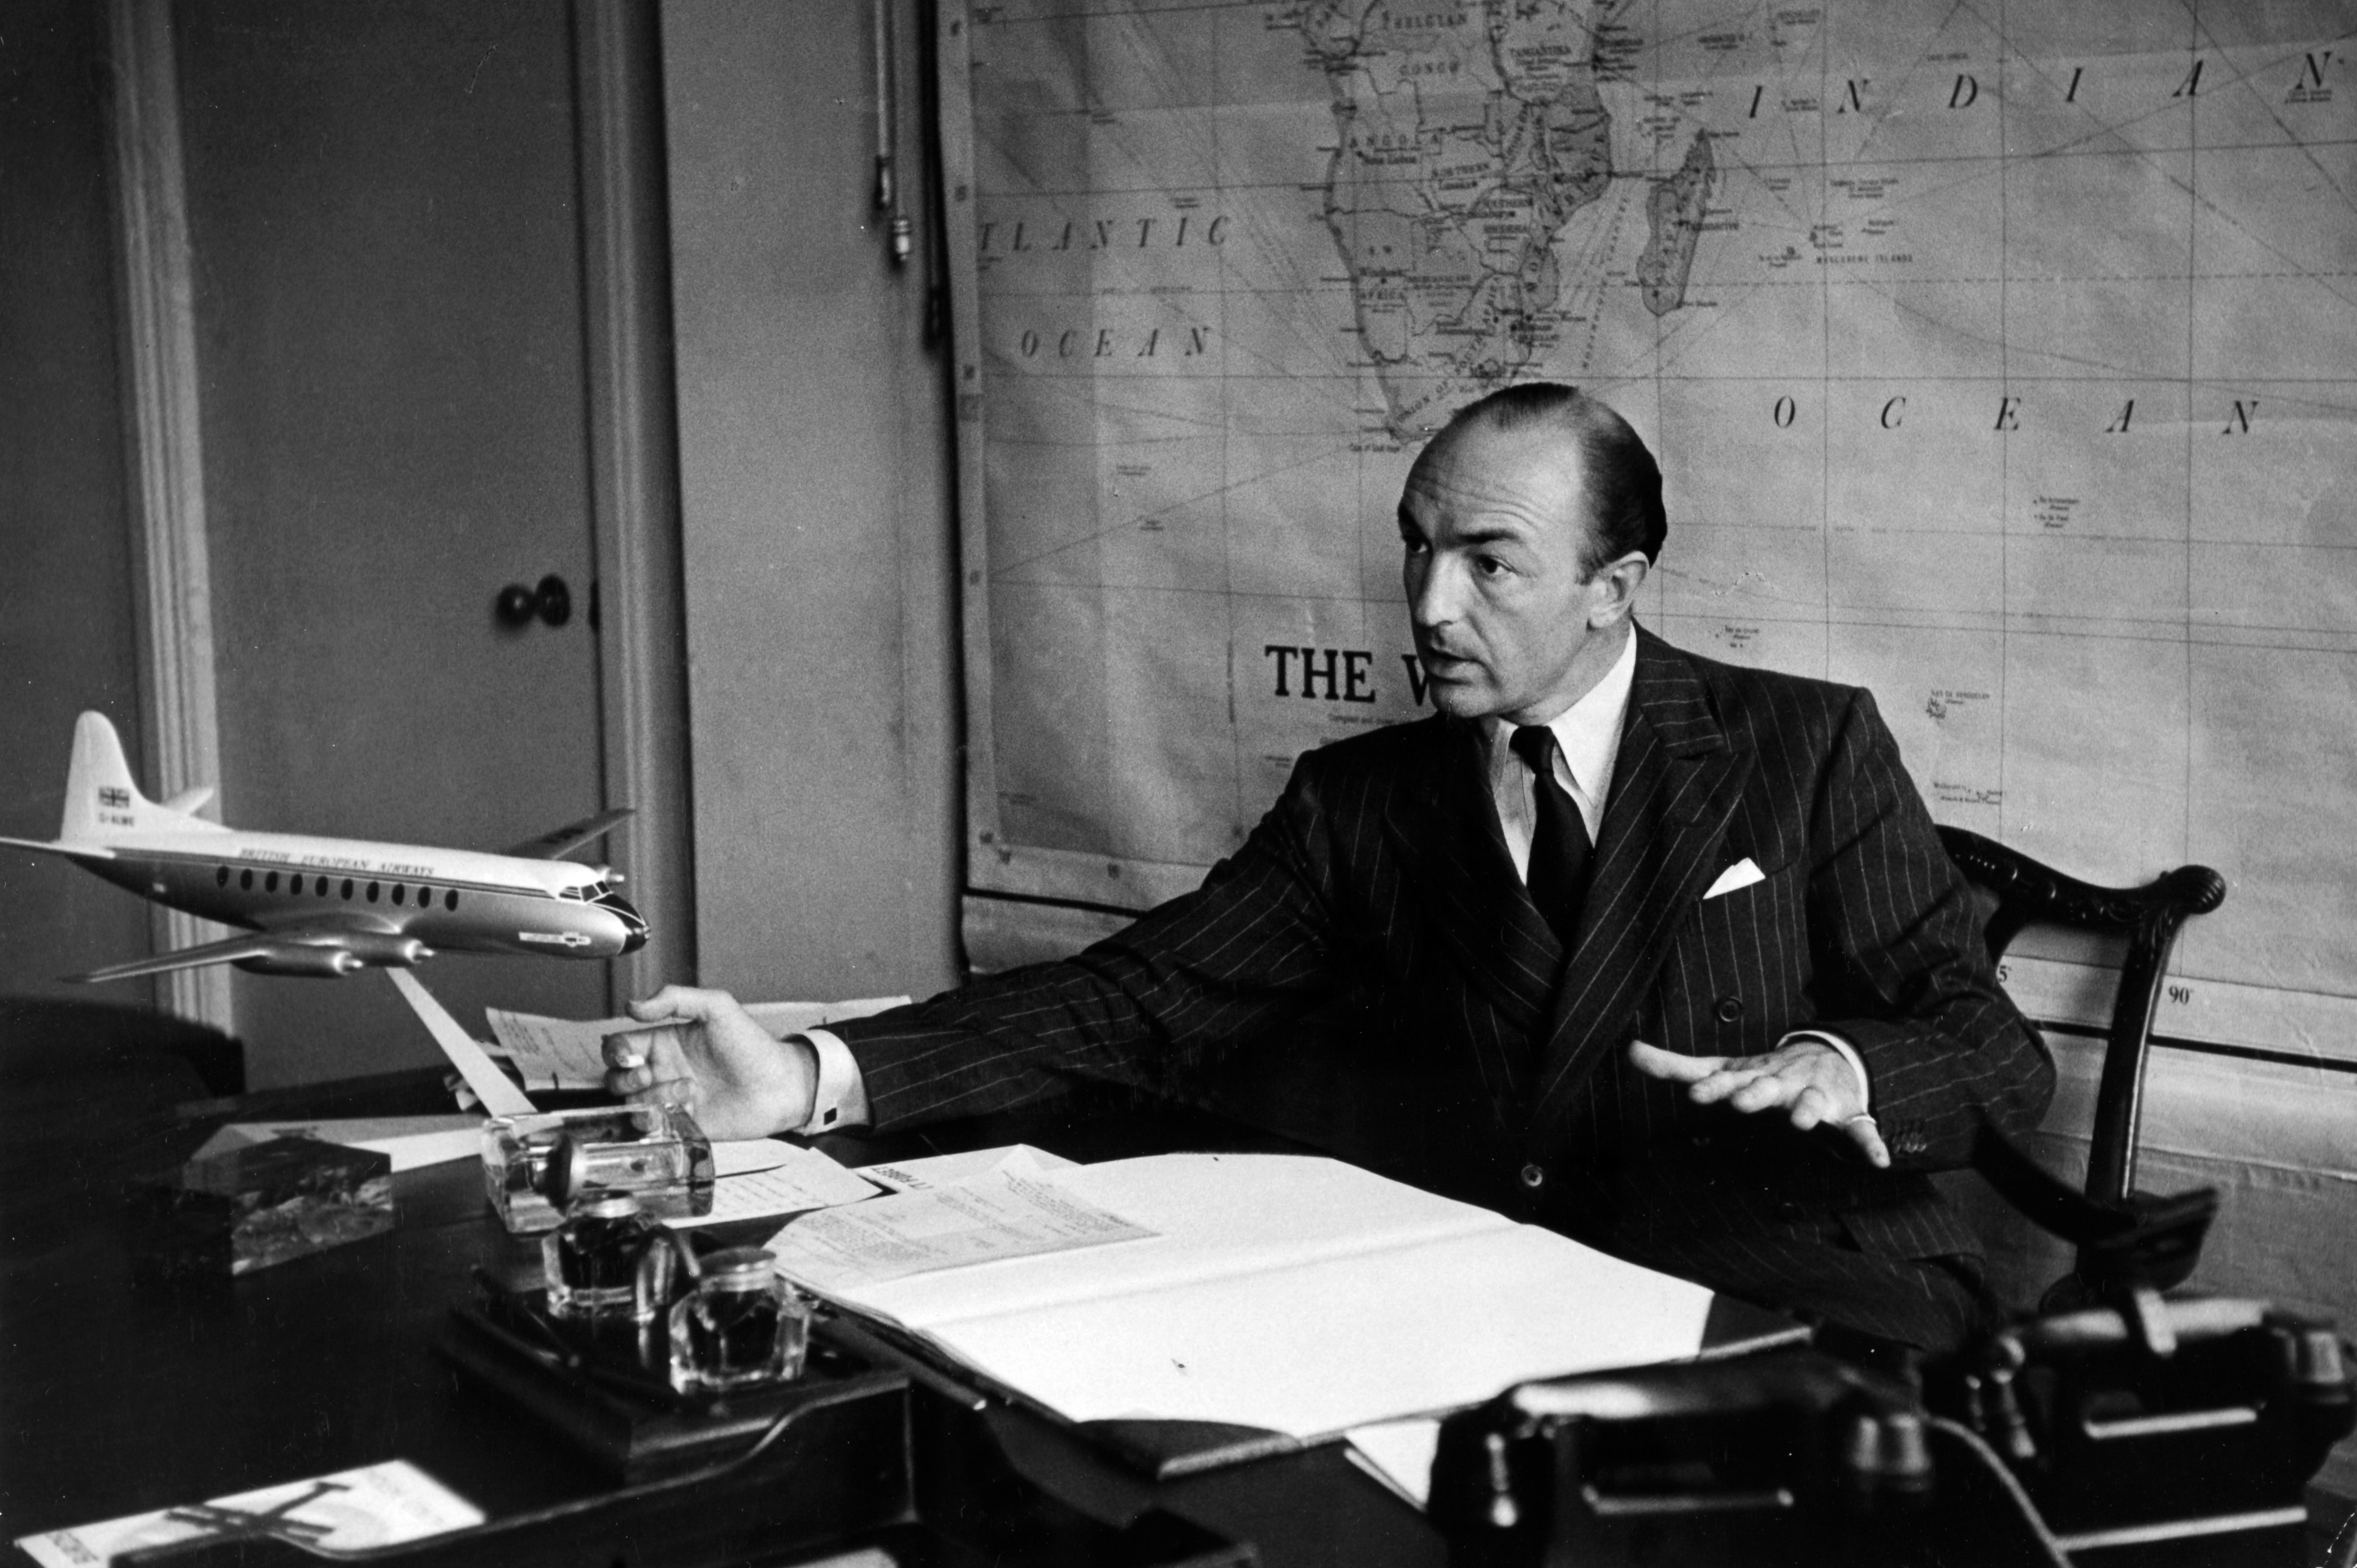 Profumo, the ambitious minister aged only 38, at his desk at the Ministry of Aviation in 1953. (© Popperfoto/Getty Images.)